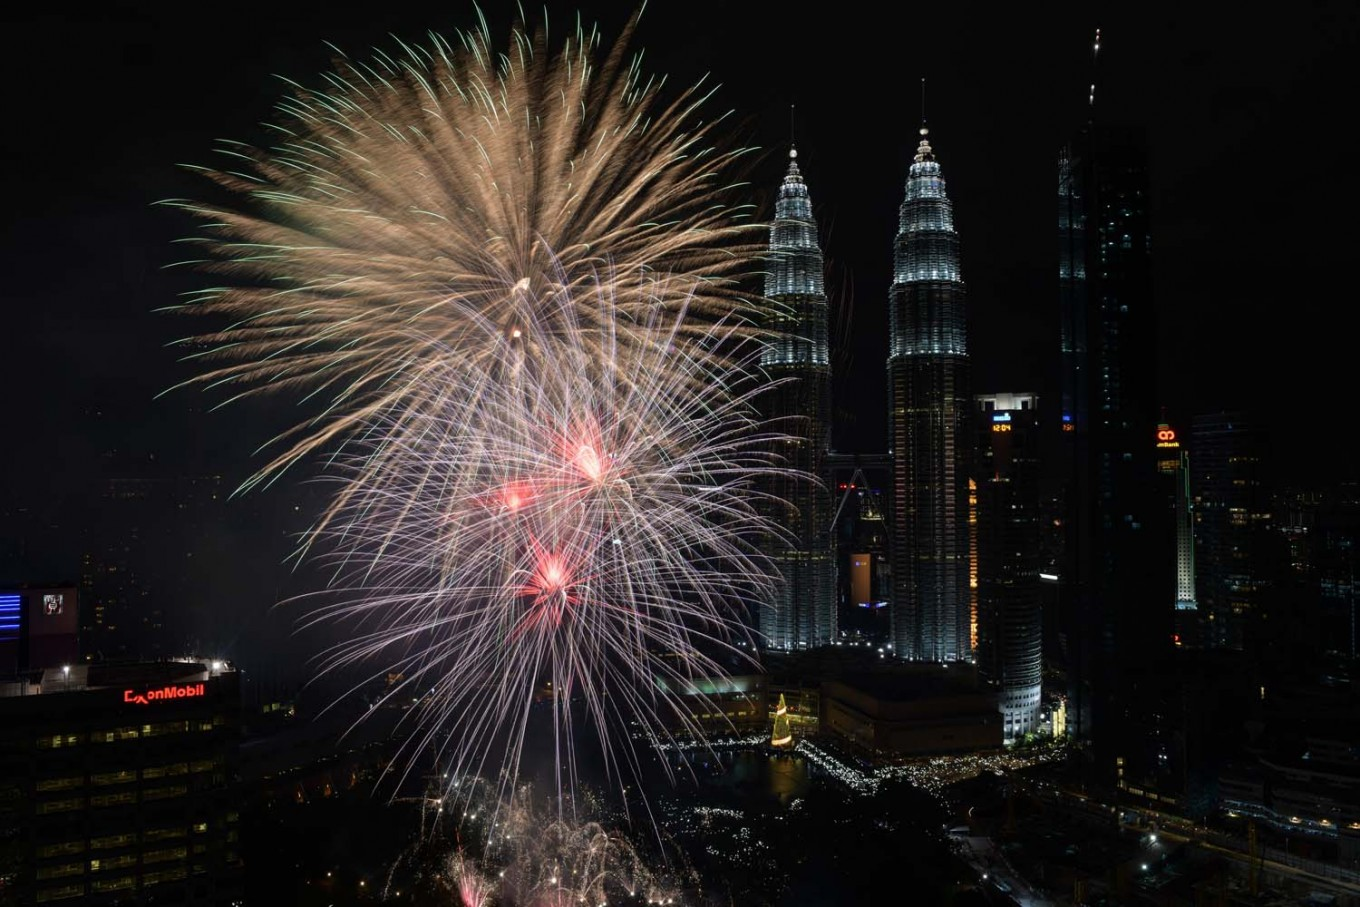 Fireworks illuminate the sky near Malaysia's Petronas Twin Towers during New Year celebrations in Kuala Lumpur on January 1, 2018. AFP/Mohd Rasfan